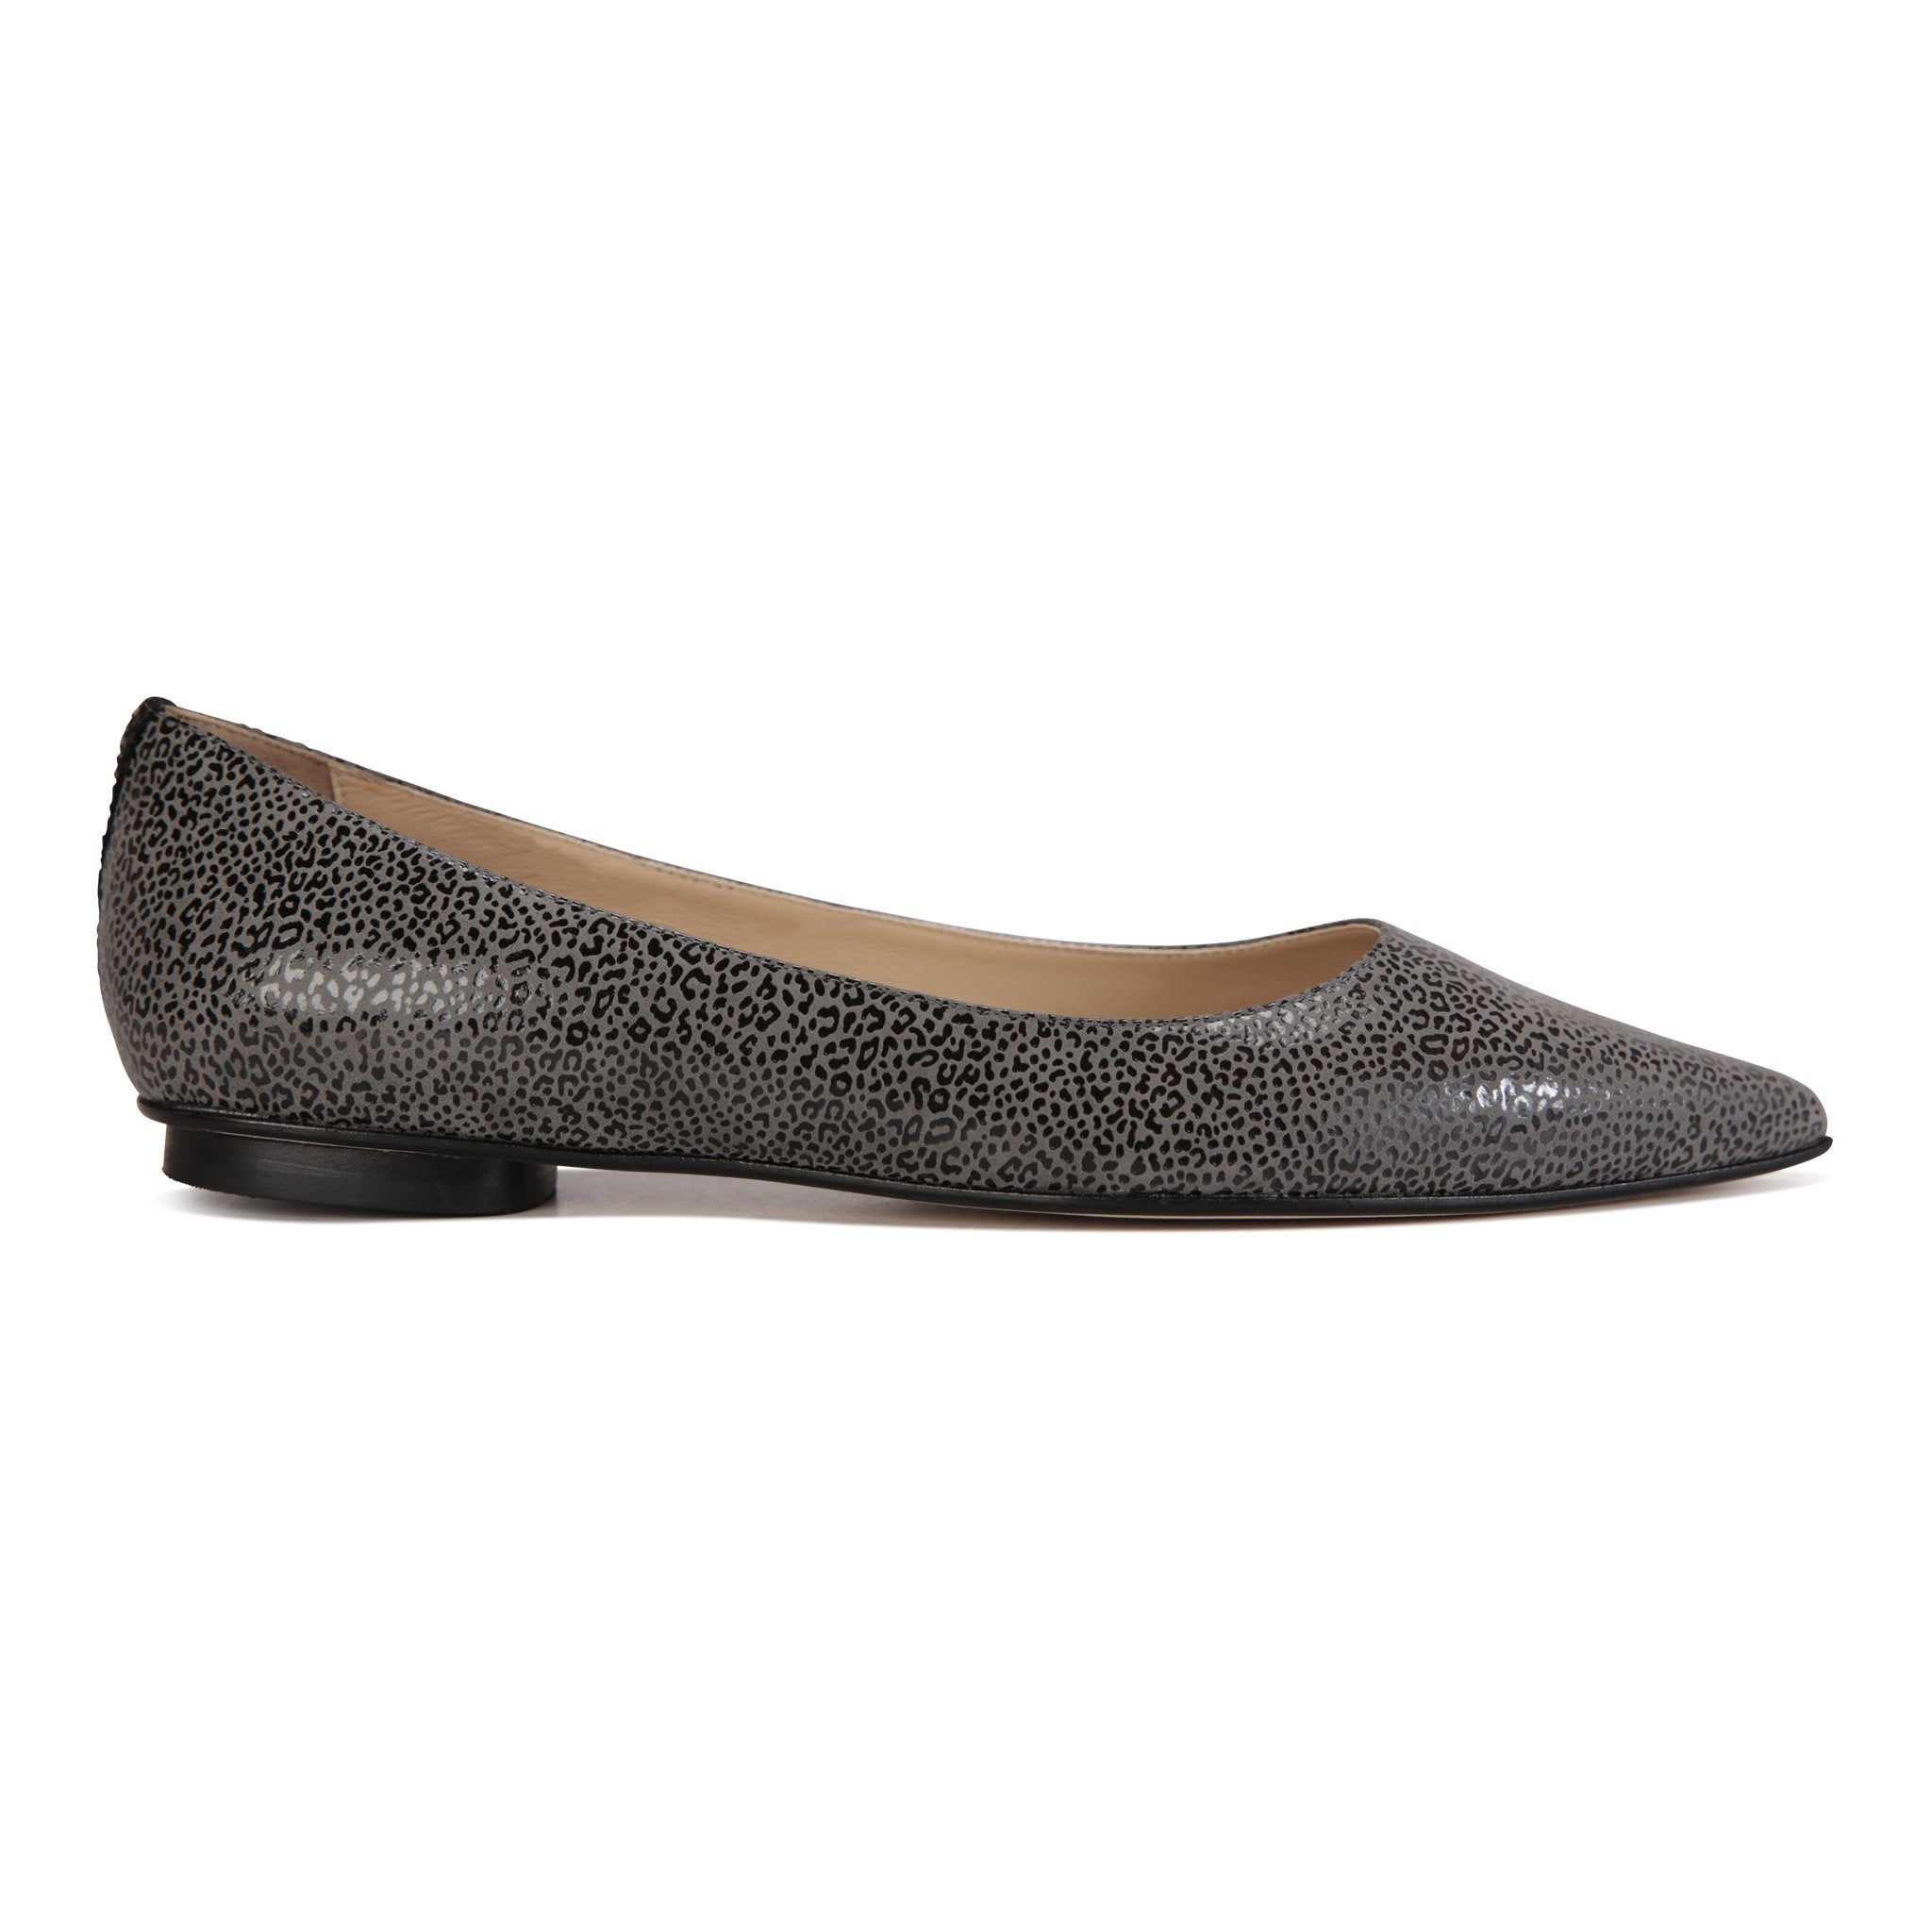 COMO - Savannah Anthracite + Nero, VIAJIYU - Women's Hand Made Sustainable Luxury Shoes. Made in Italy. Made to Order.